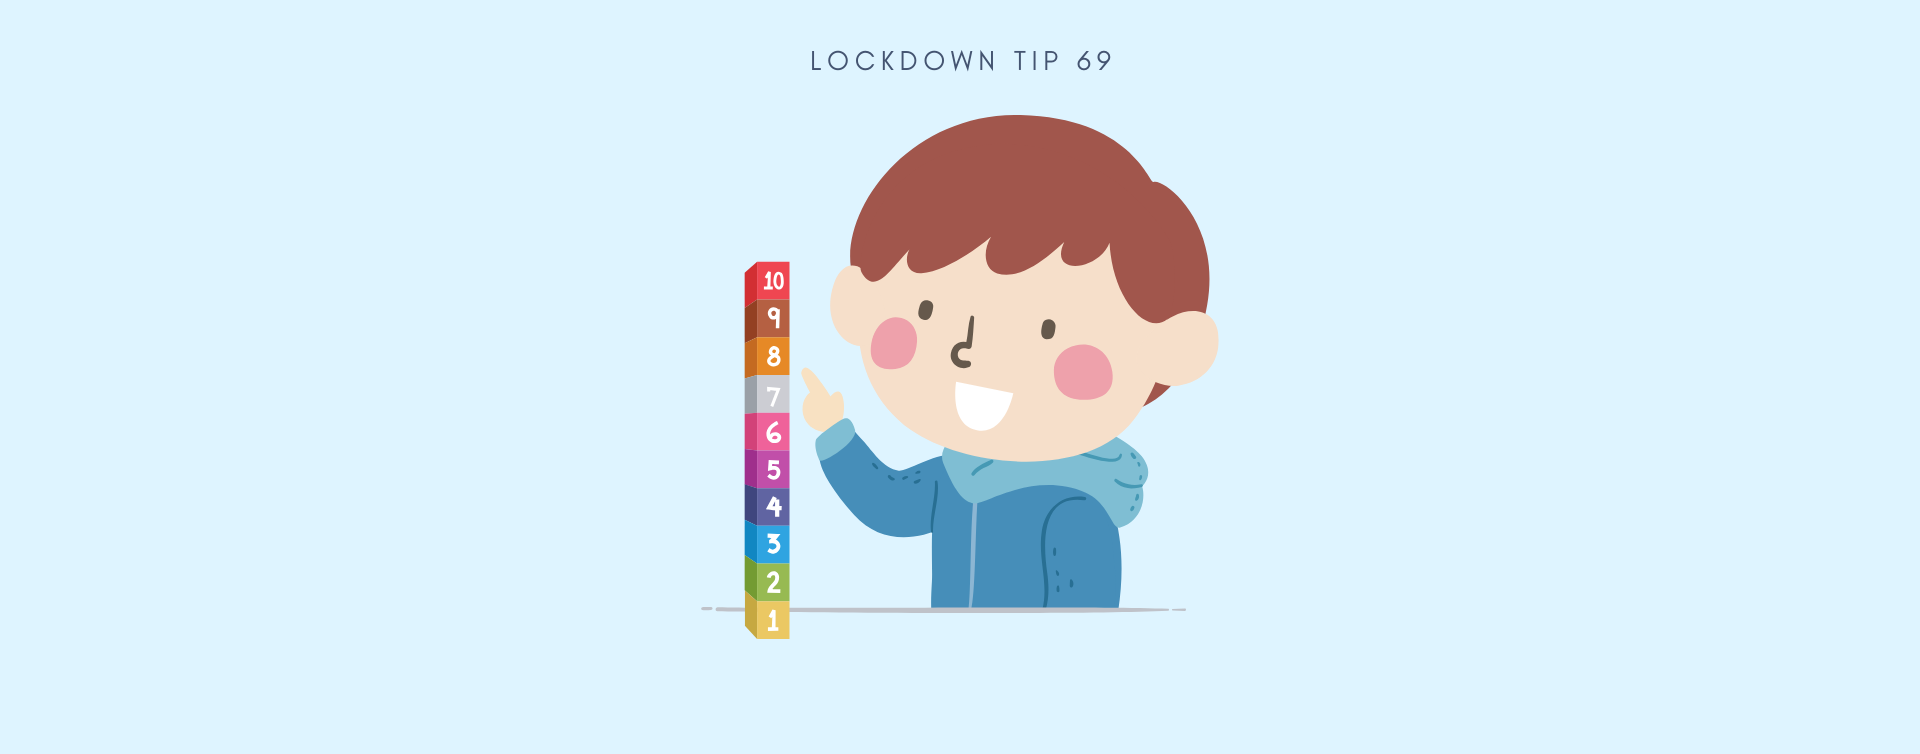 MCSA Lockdown Tip 69